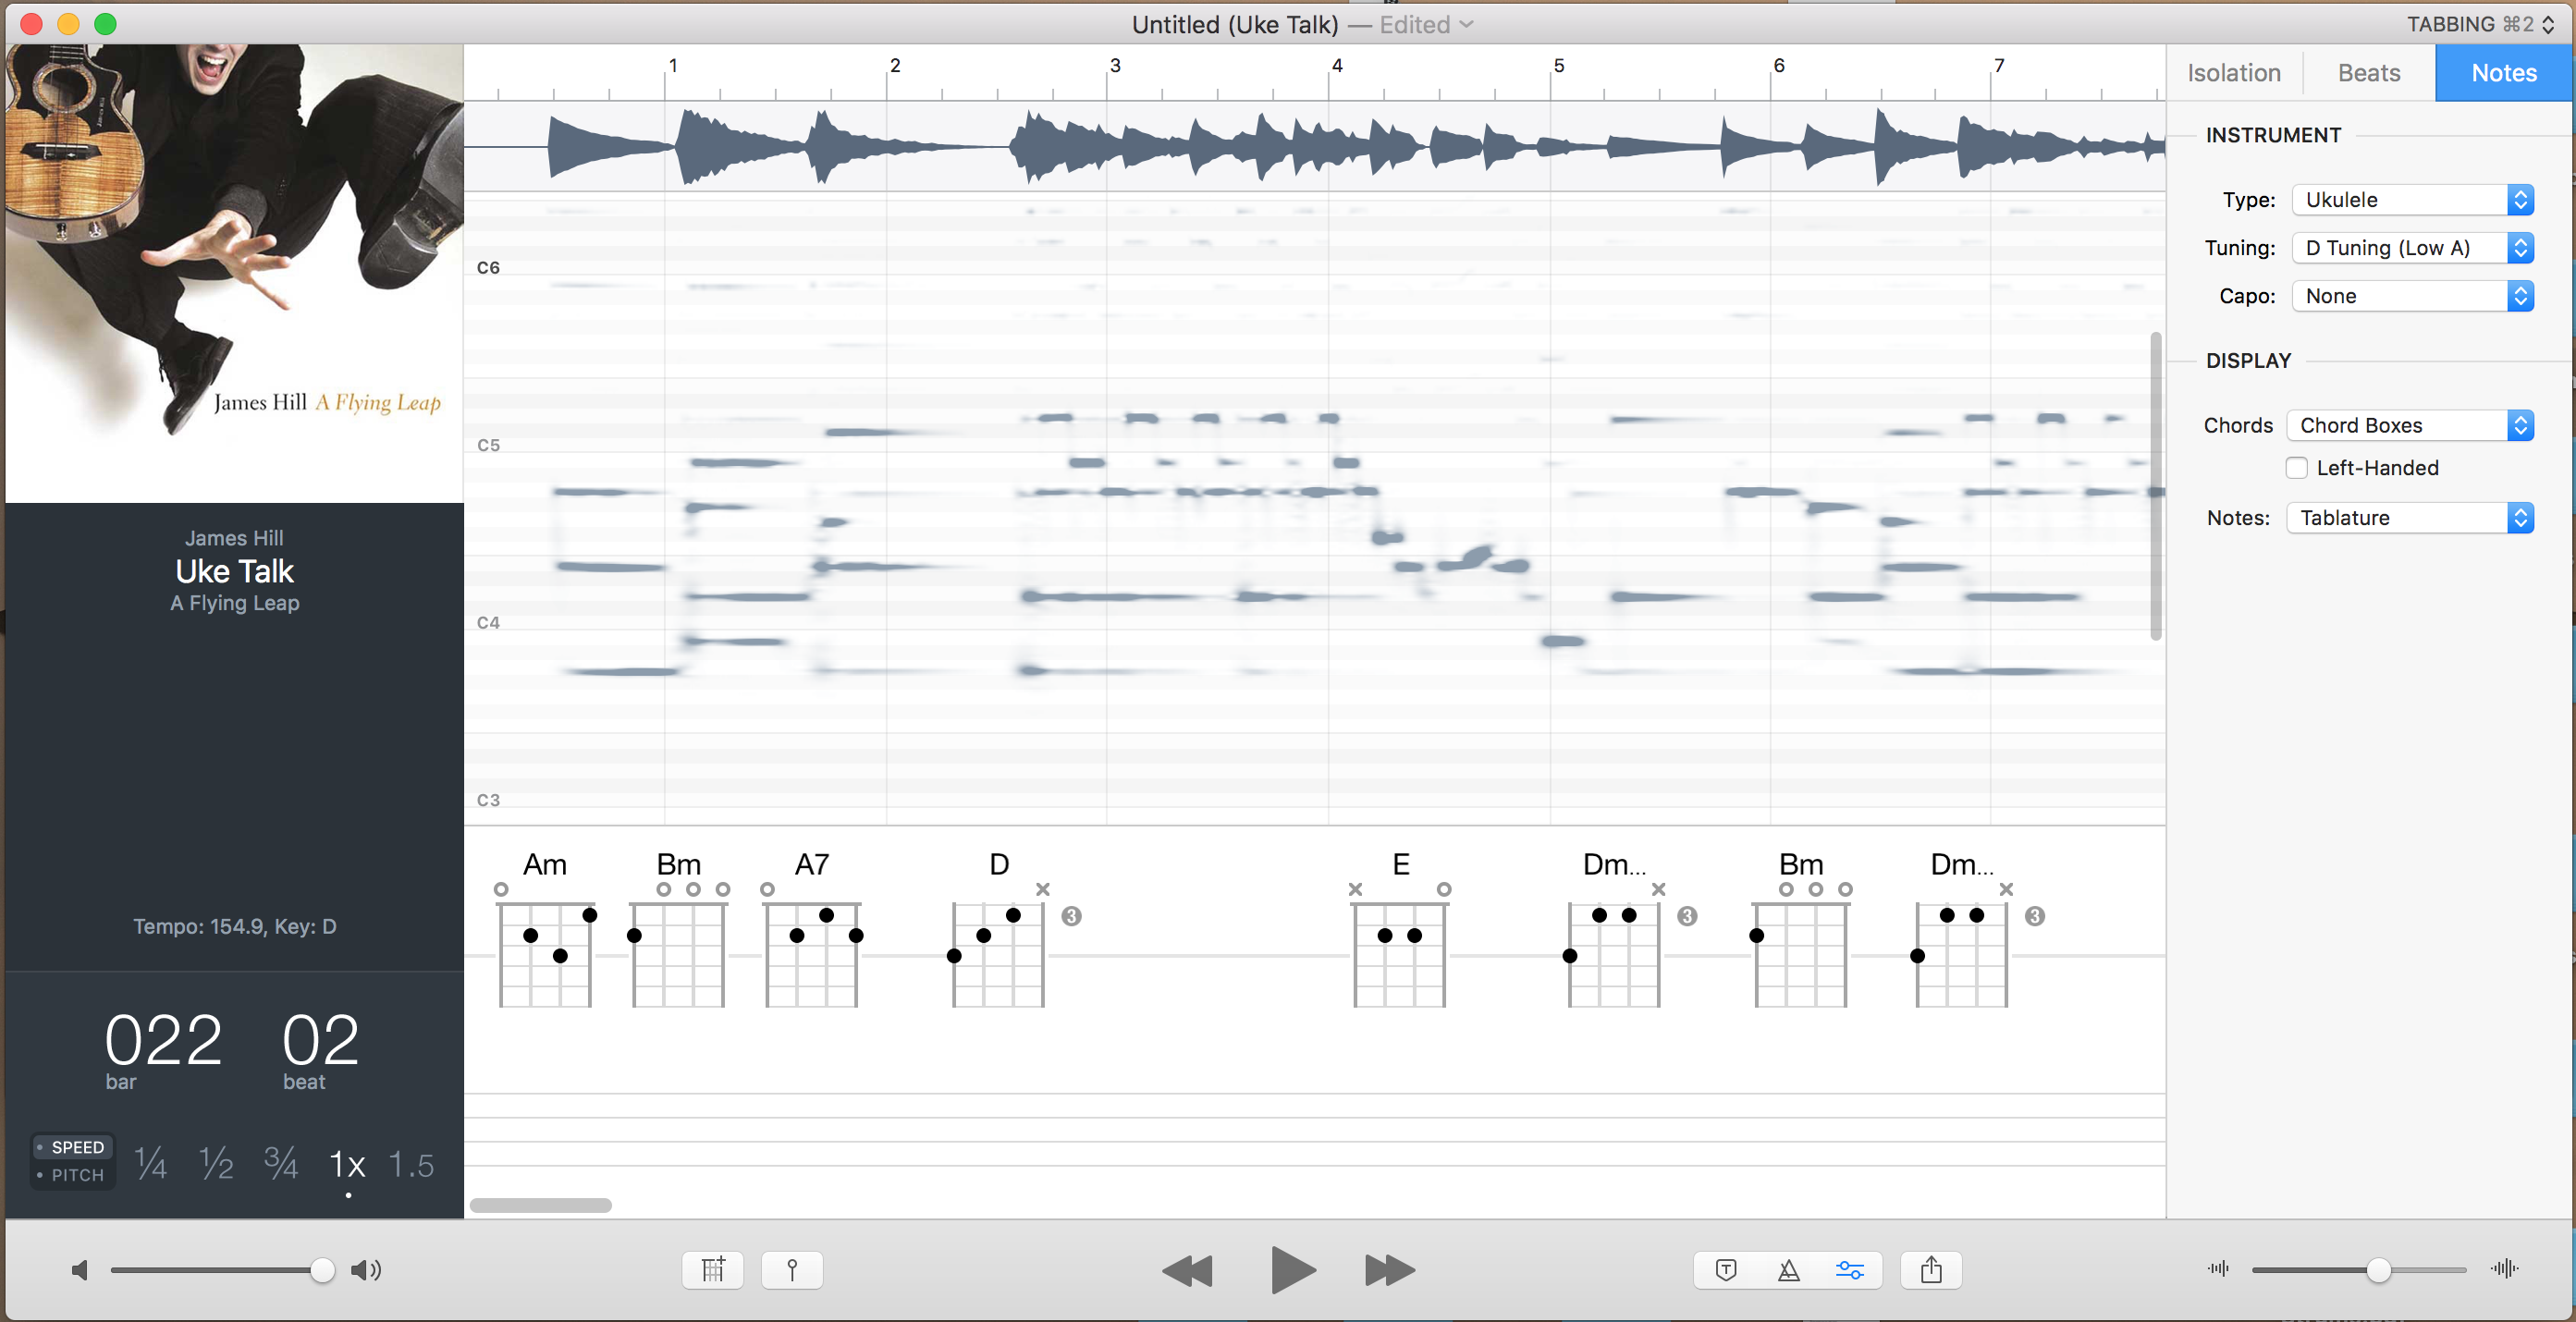 Ukulele Hunt A7 Uke Chord Diagram At The Top Youve Got Track Itself Then In Middle You Have Spectrogram This Shows Pitches Of All Notes Capo Picks Up